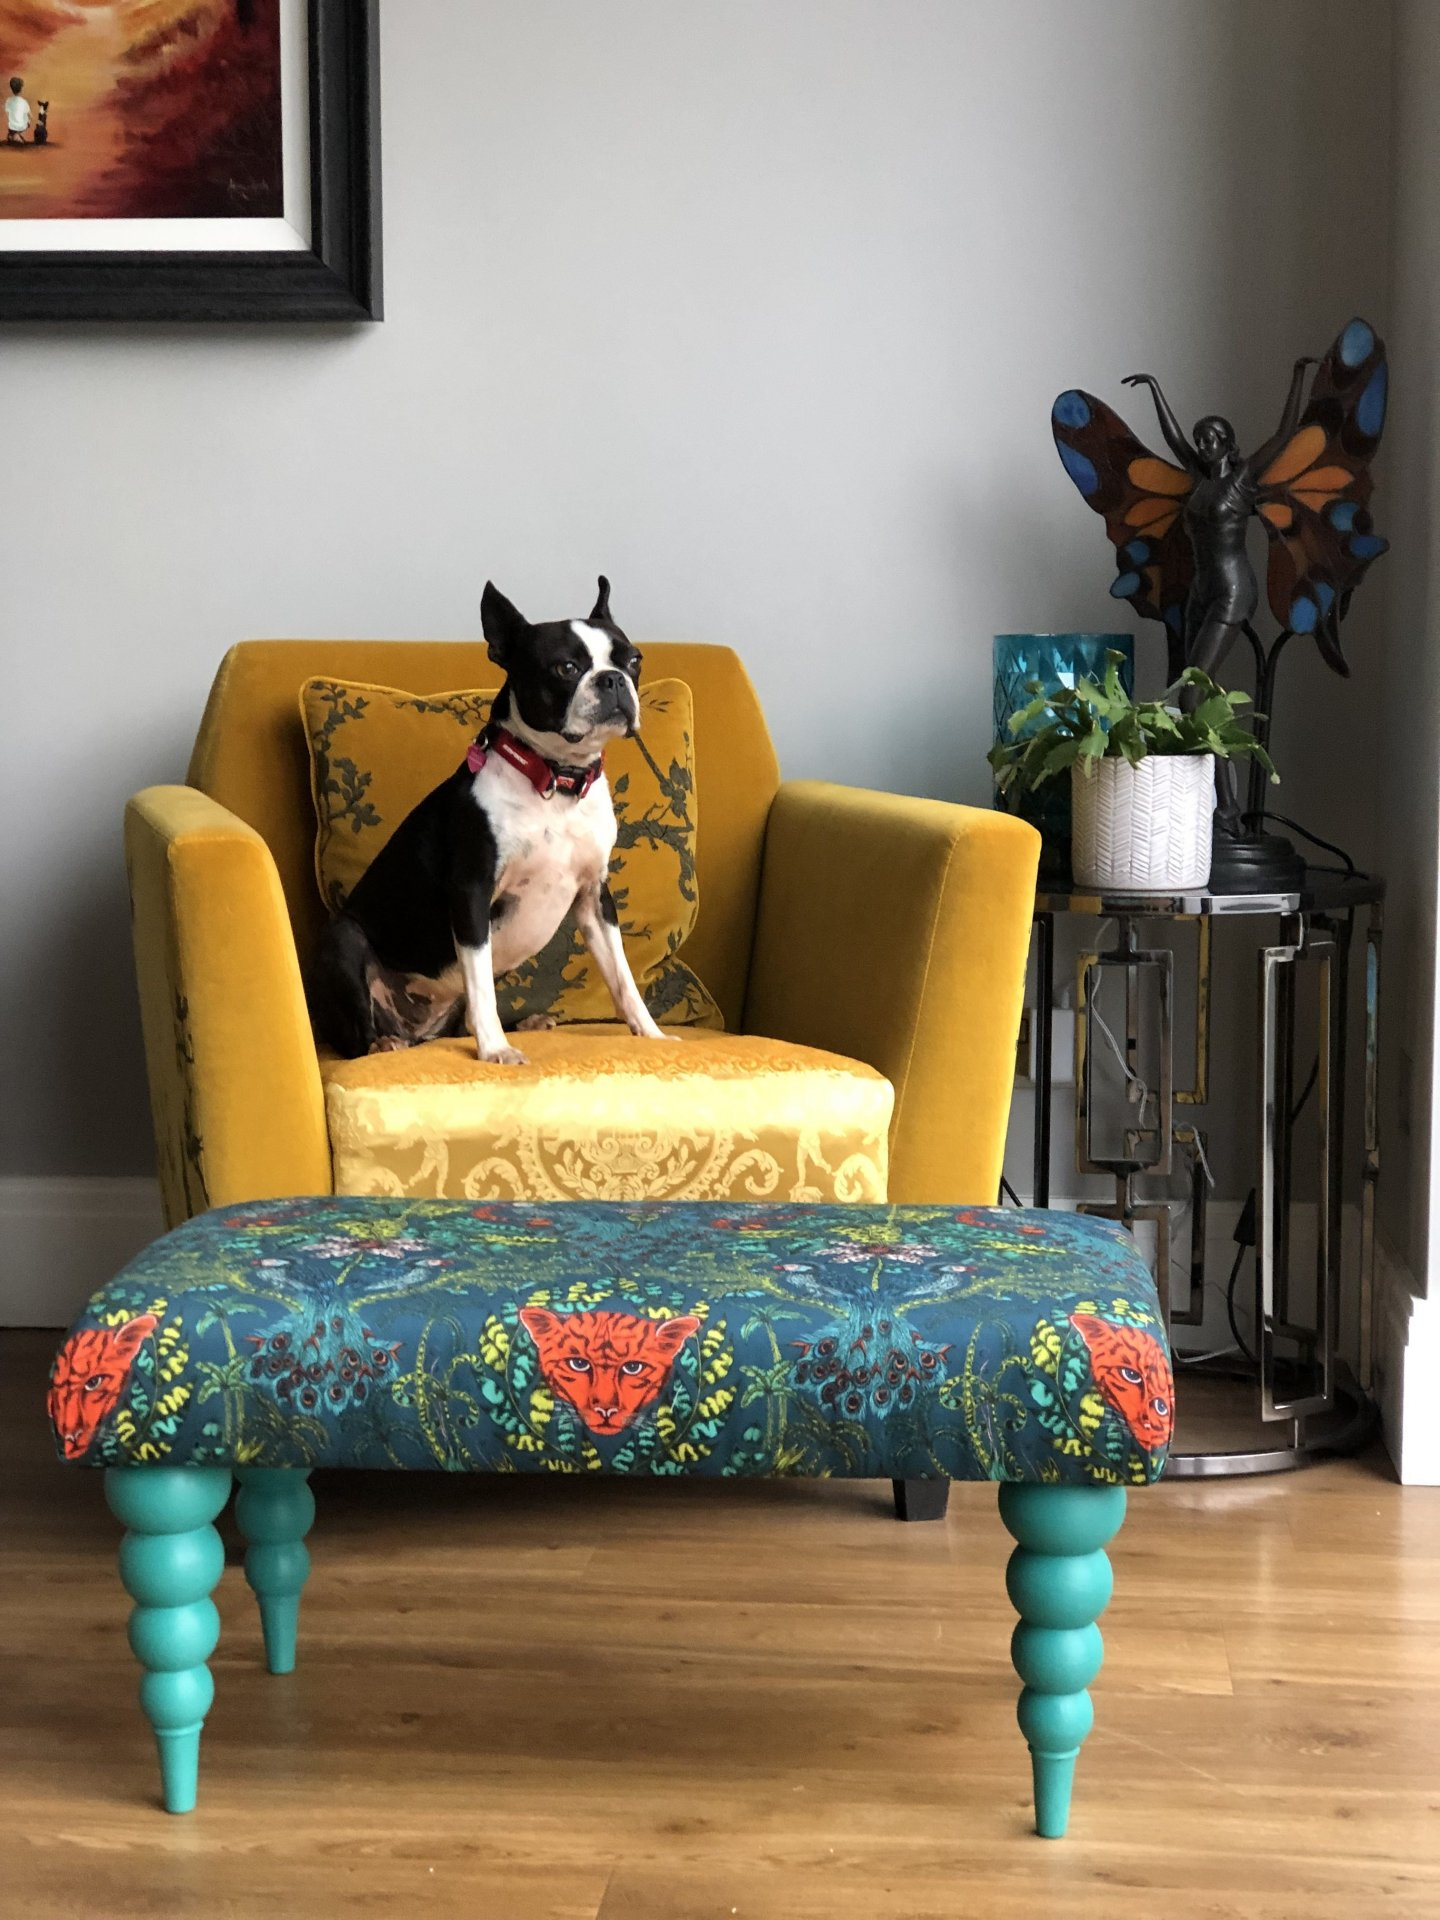 Making an upholstered footstool in Essex. the footstool is bang on trend and chic for todays interior design and a perfect project to ease you in to upholstery and interior design With Fabric from Emma Shipley.